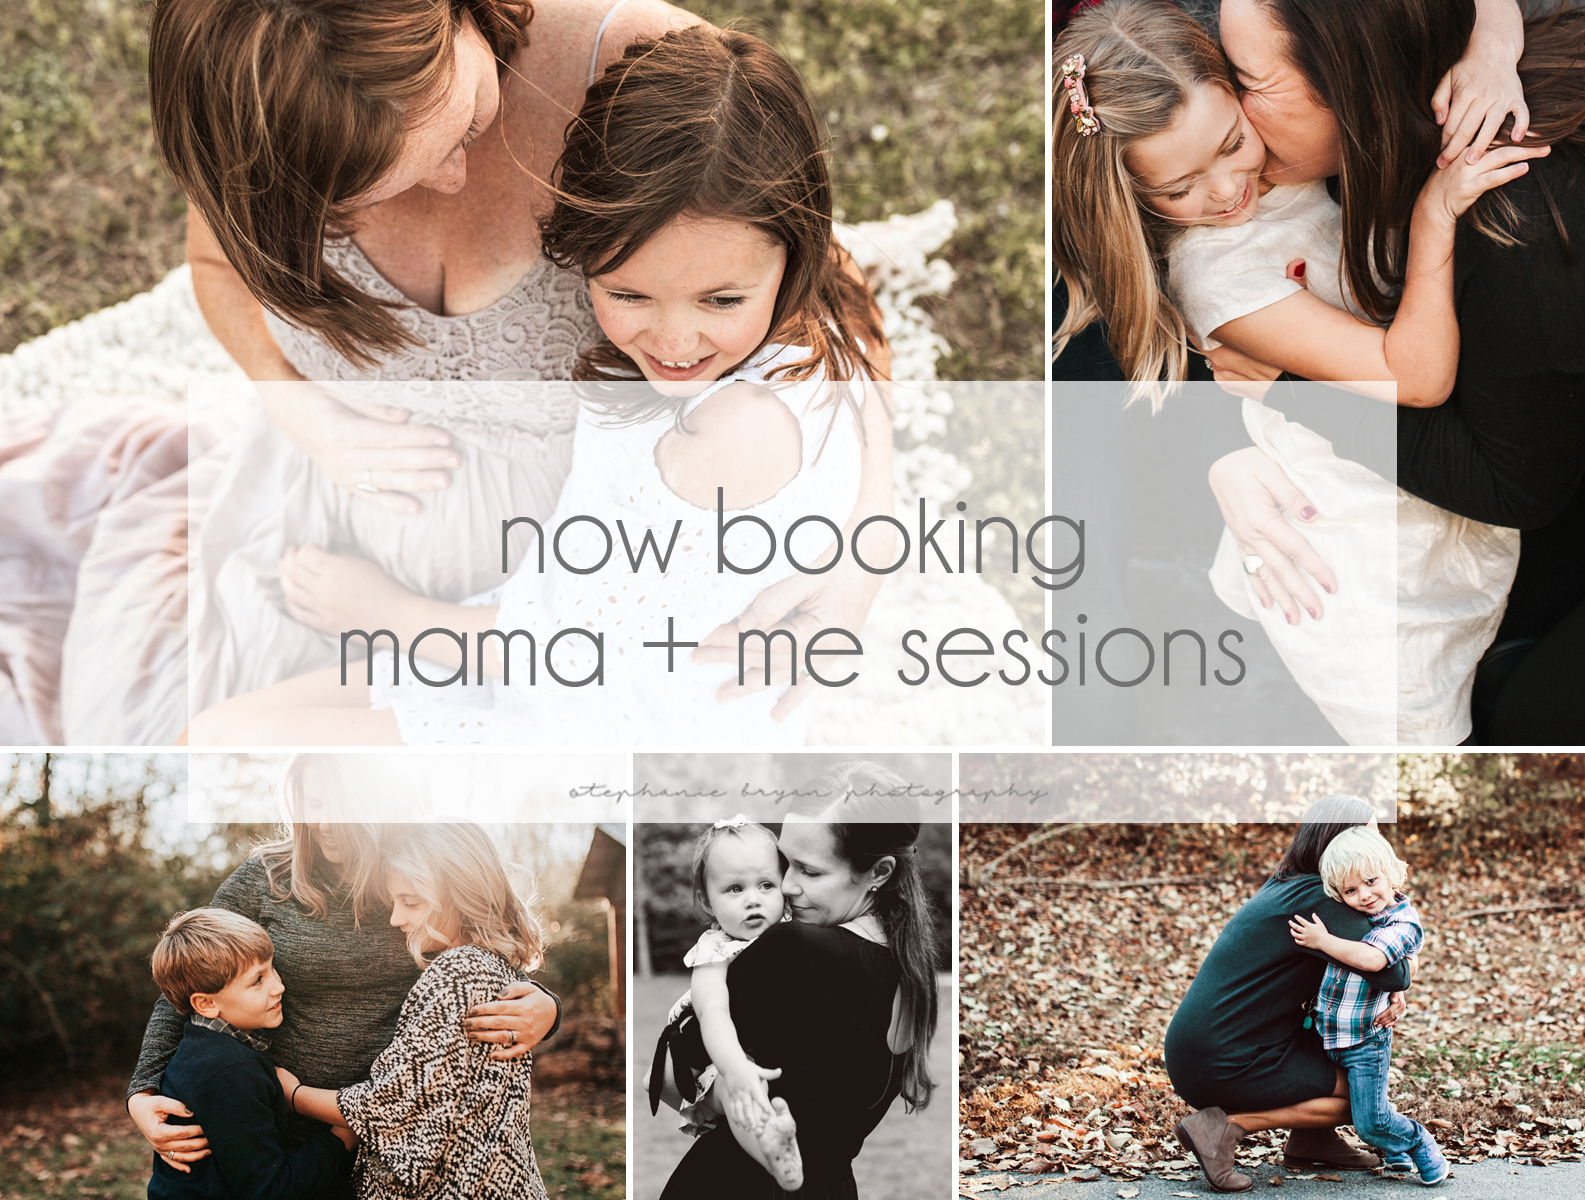 Stephanie Bryan Photography - Book your mama + me session today!